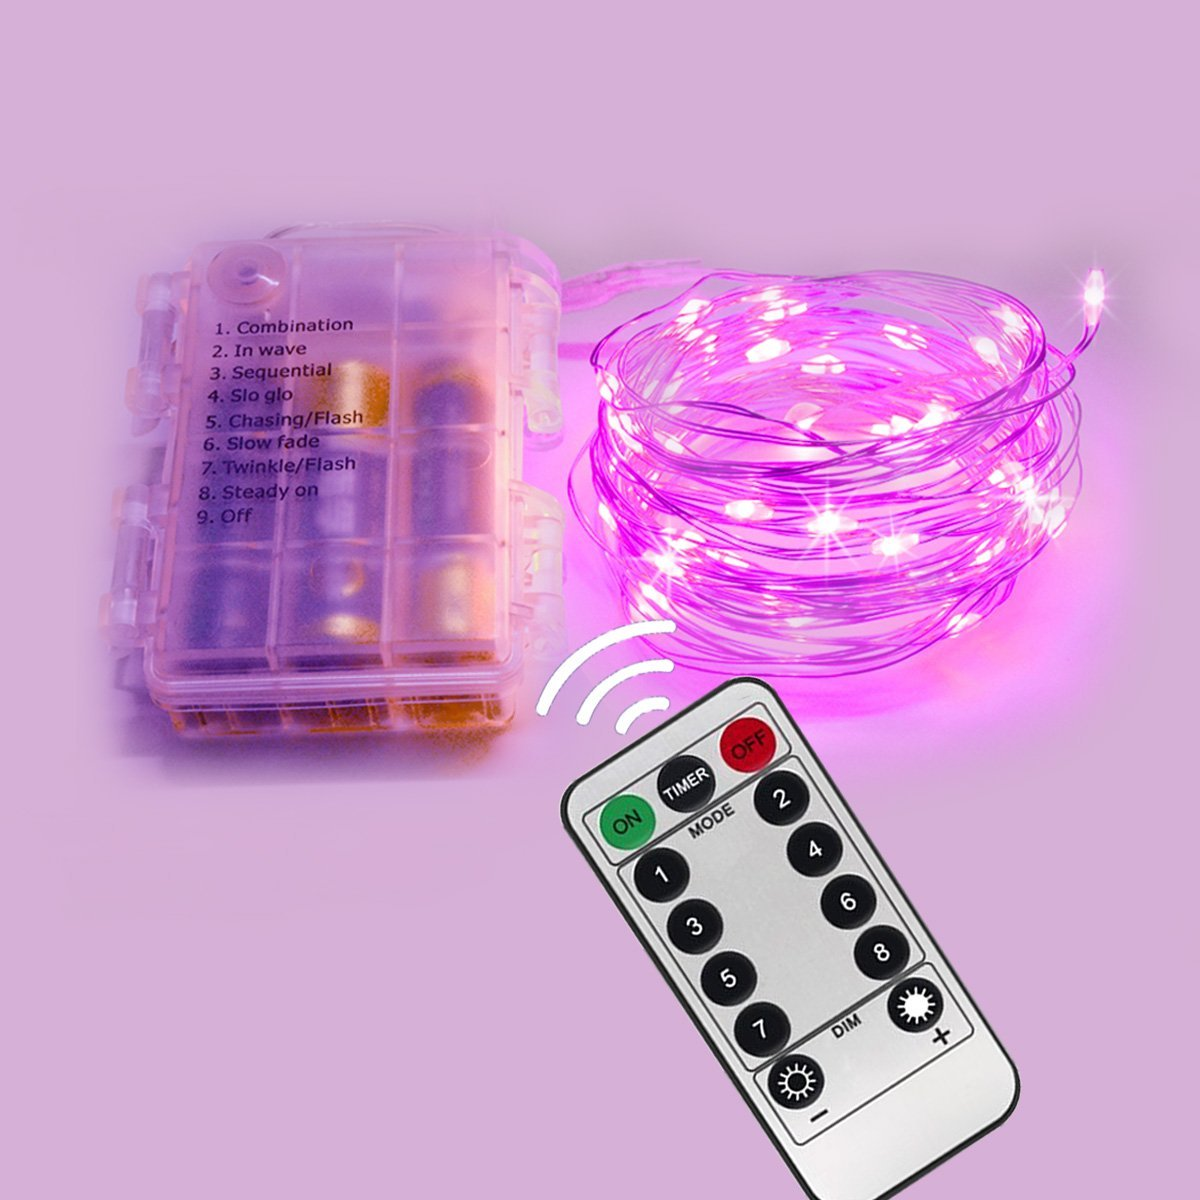 Homeleo 5M 50LEDS Battery Operated Remote Contol LED String Lights Flexible Copper Wire Light LED Starry Lights Fairy Lights AA Battery Powered Tiny Decorative Lights(50 Leds, Pink, Waterproof)